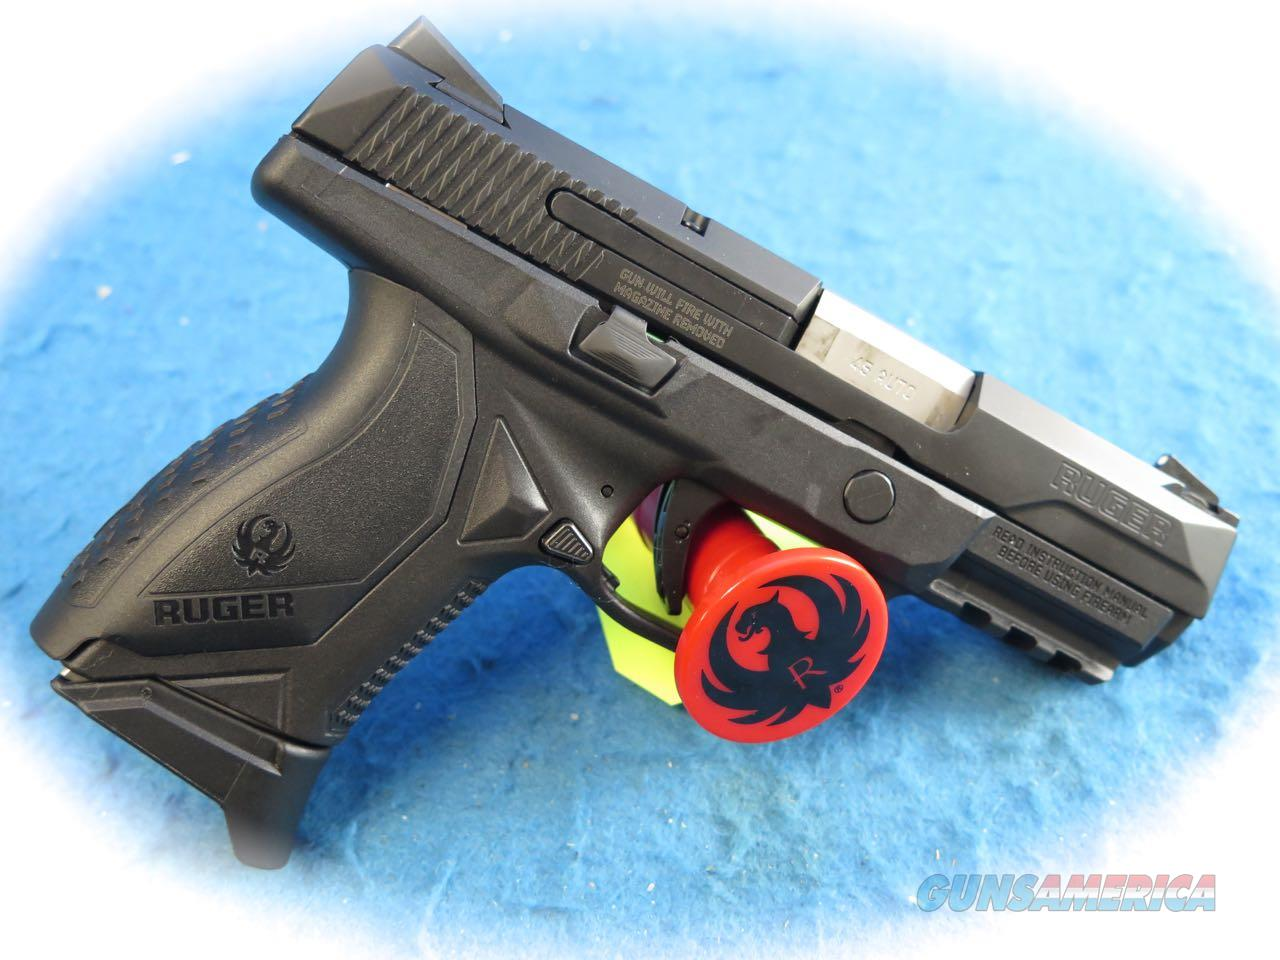 Ruger American Pro Compact .45 ACP Pistol Model 8645 **New** Guns > Pistols > Ruger Semi-Auto Pistols > American Pistol